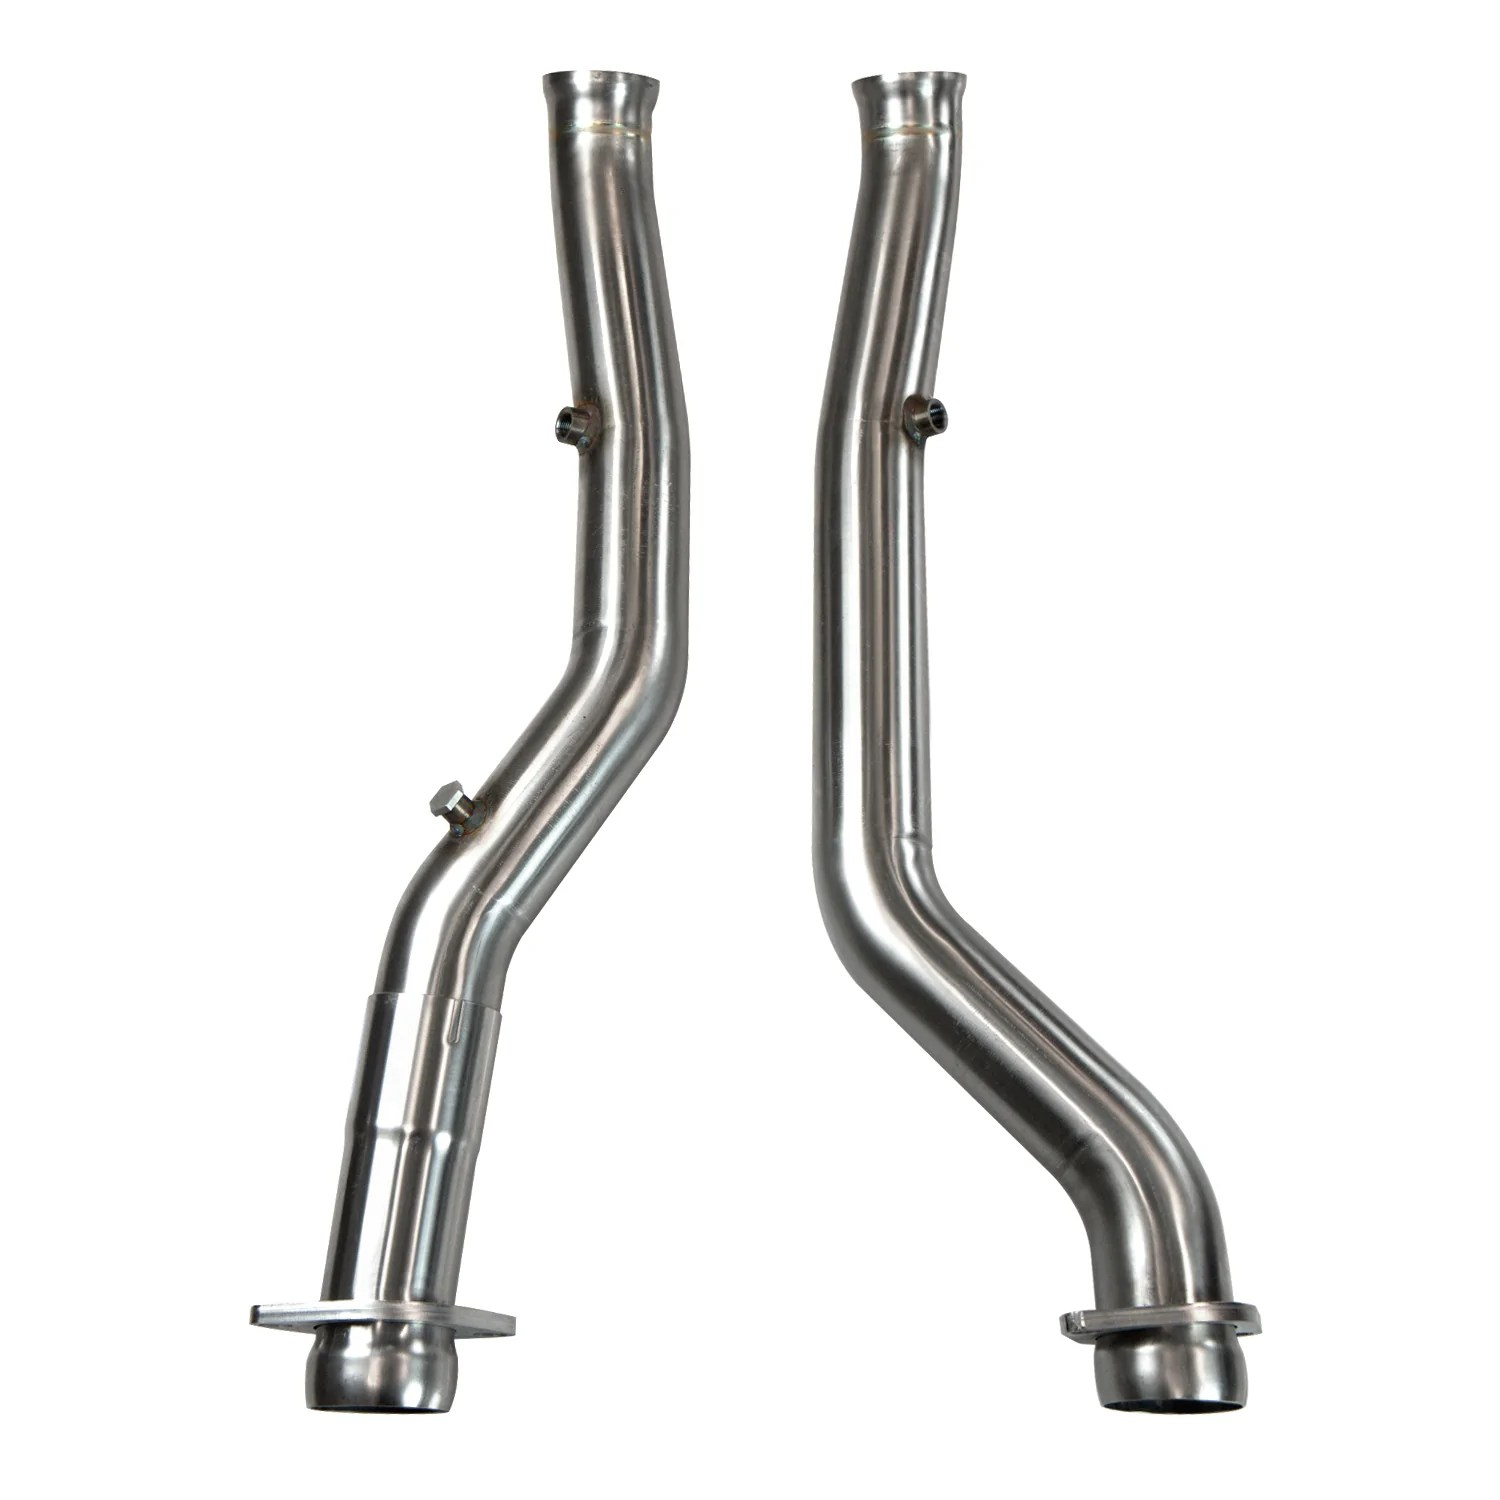 medium resolution of 2011 dodge durango 5 7l 2012 jeep grand cherokee wk2 5 7l 3 x oem non catted connection pipe